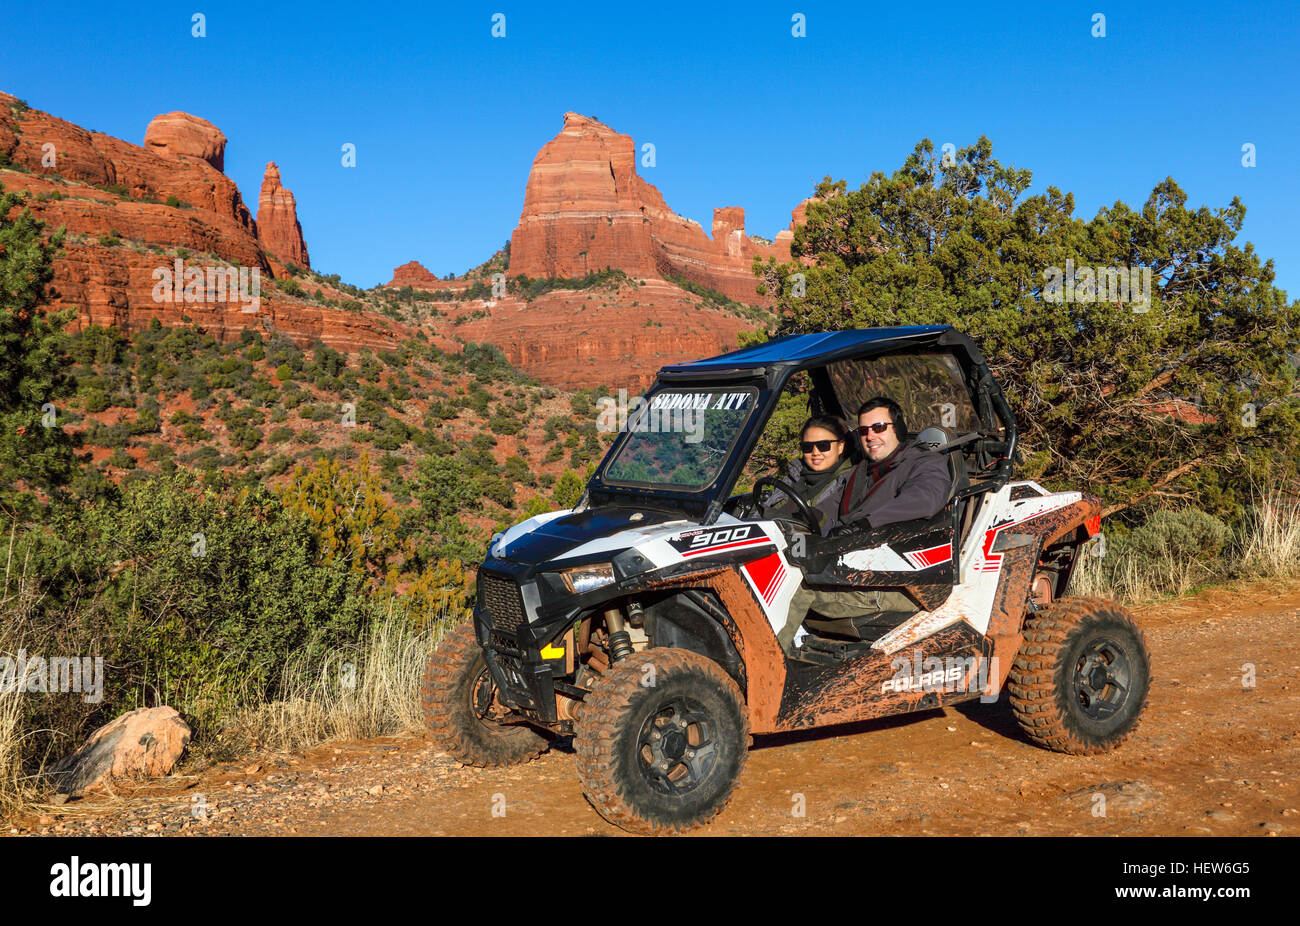 Tourists in rented ATV at Schnebly Hill road in Sedona - Stock Image